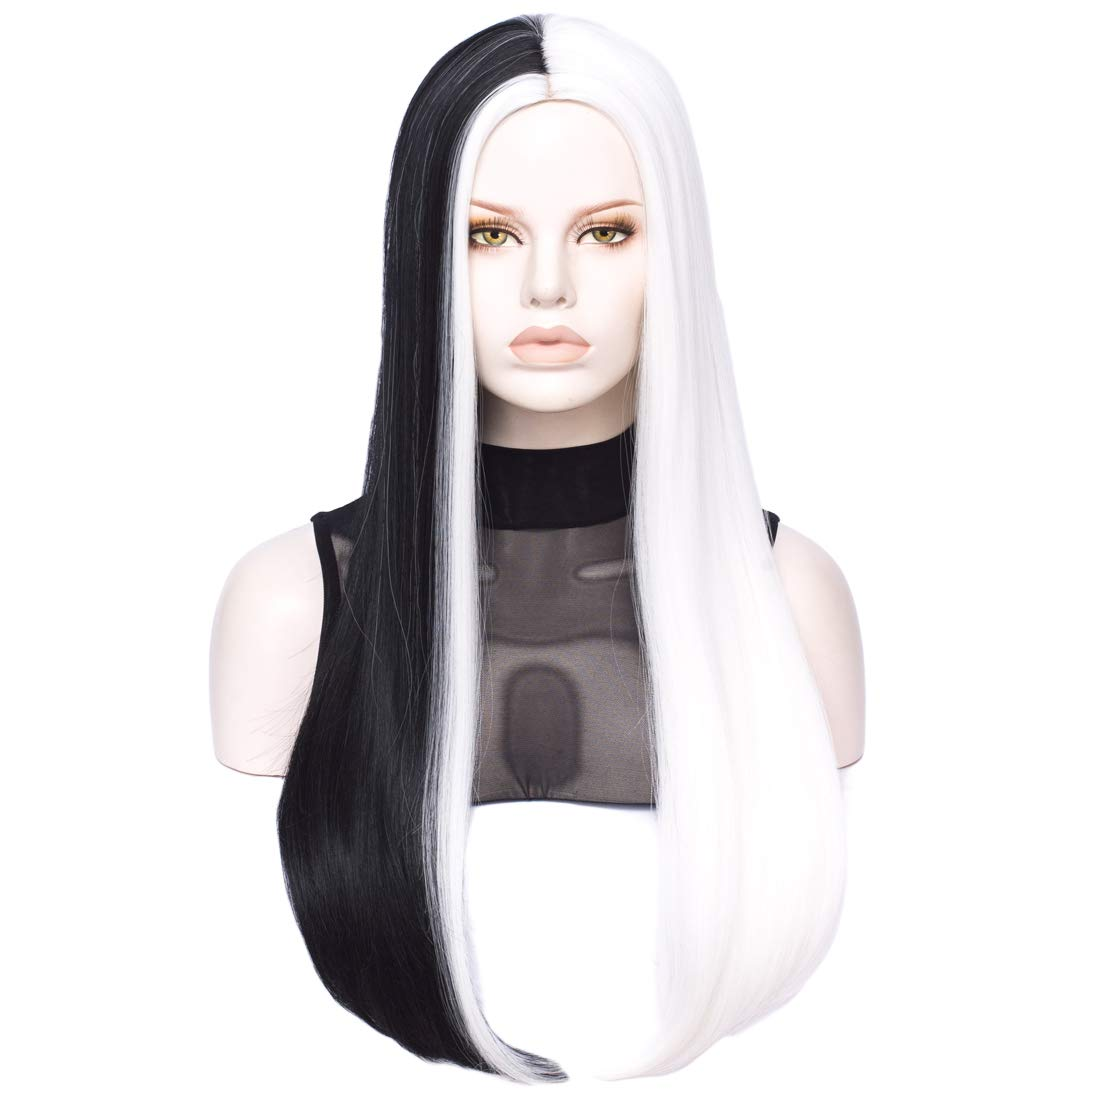 Long Straight Black and White Wig | Qaccf Women's Long Straight Middle Part Synthetic Cosplay Costume Full Wig (2 Color)